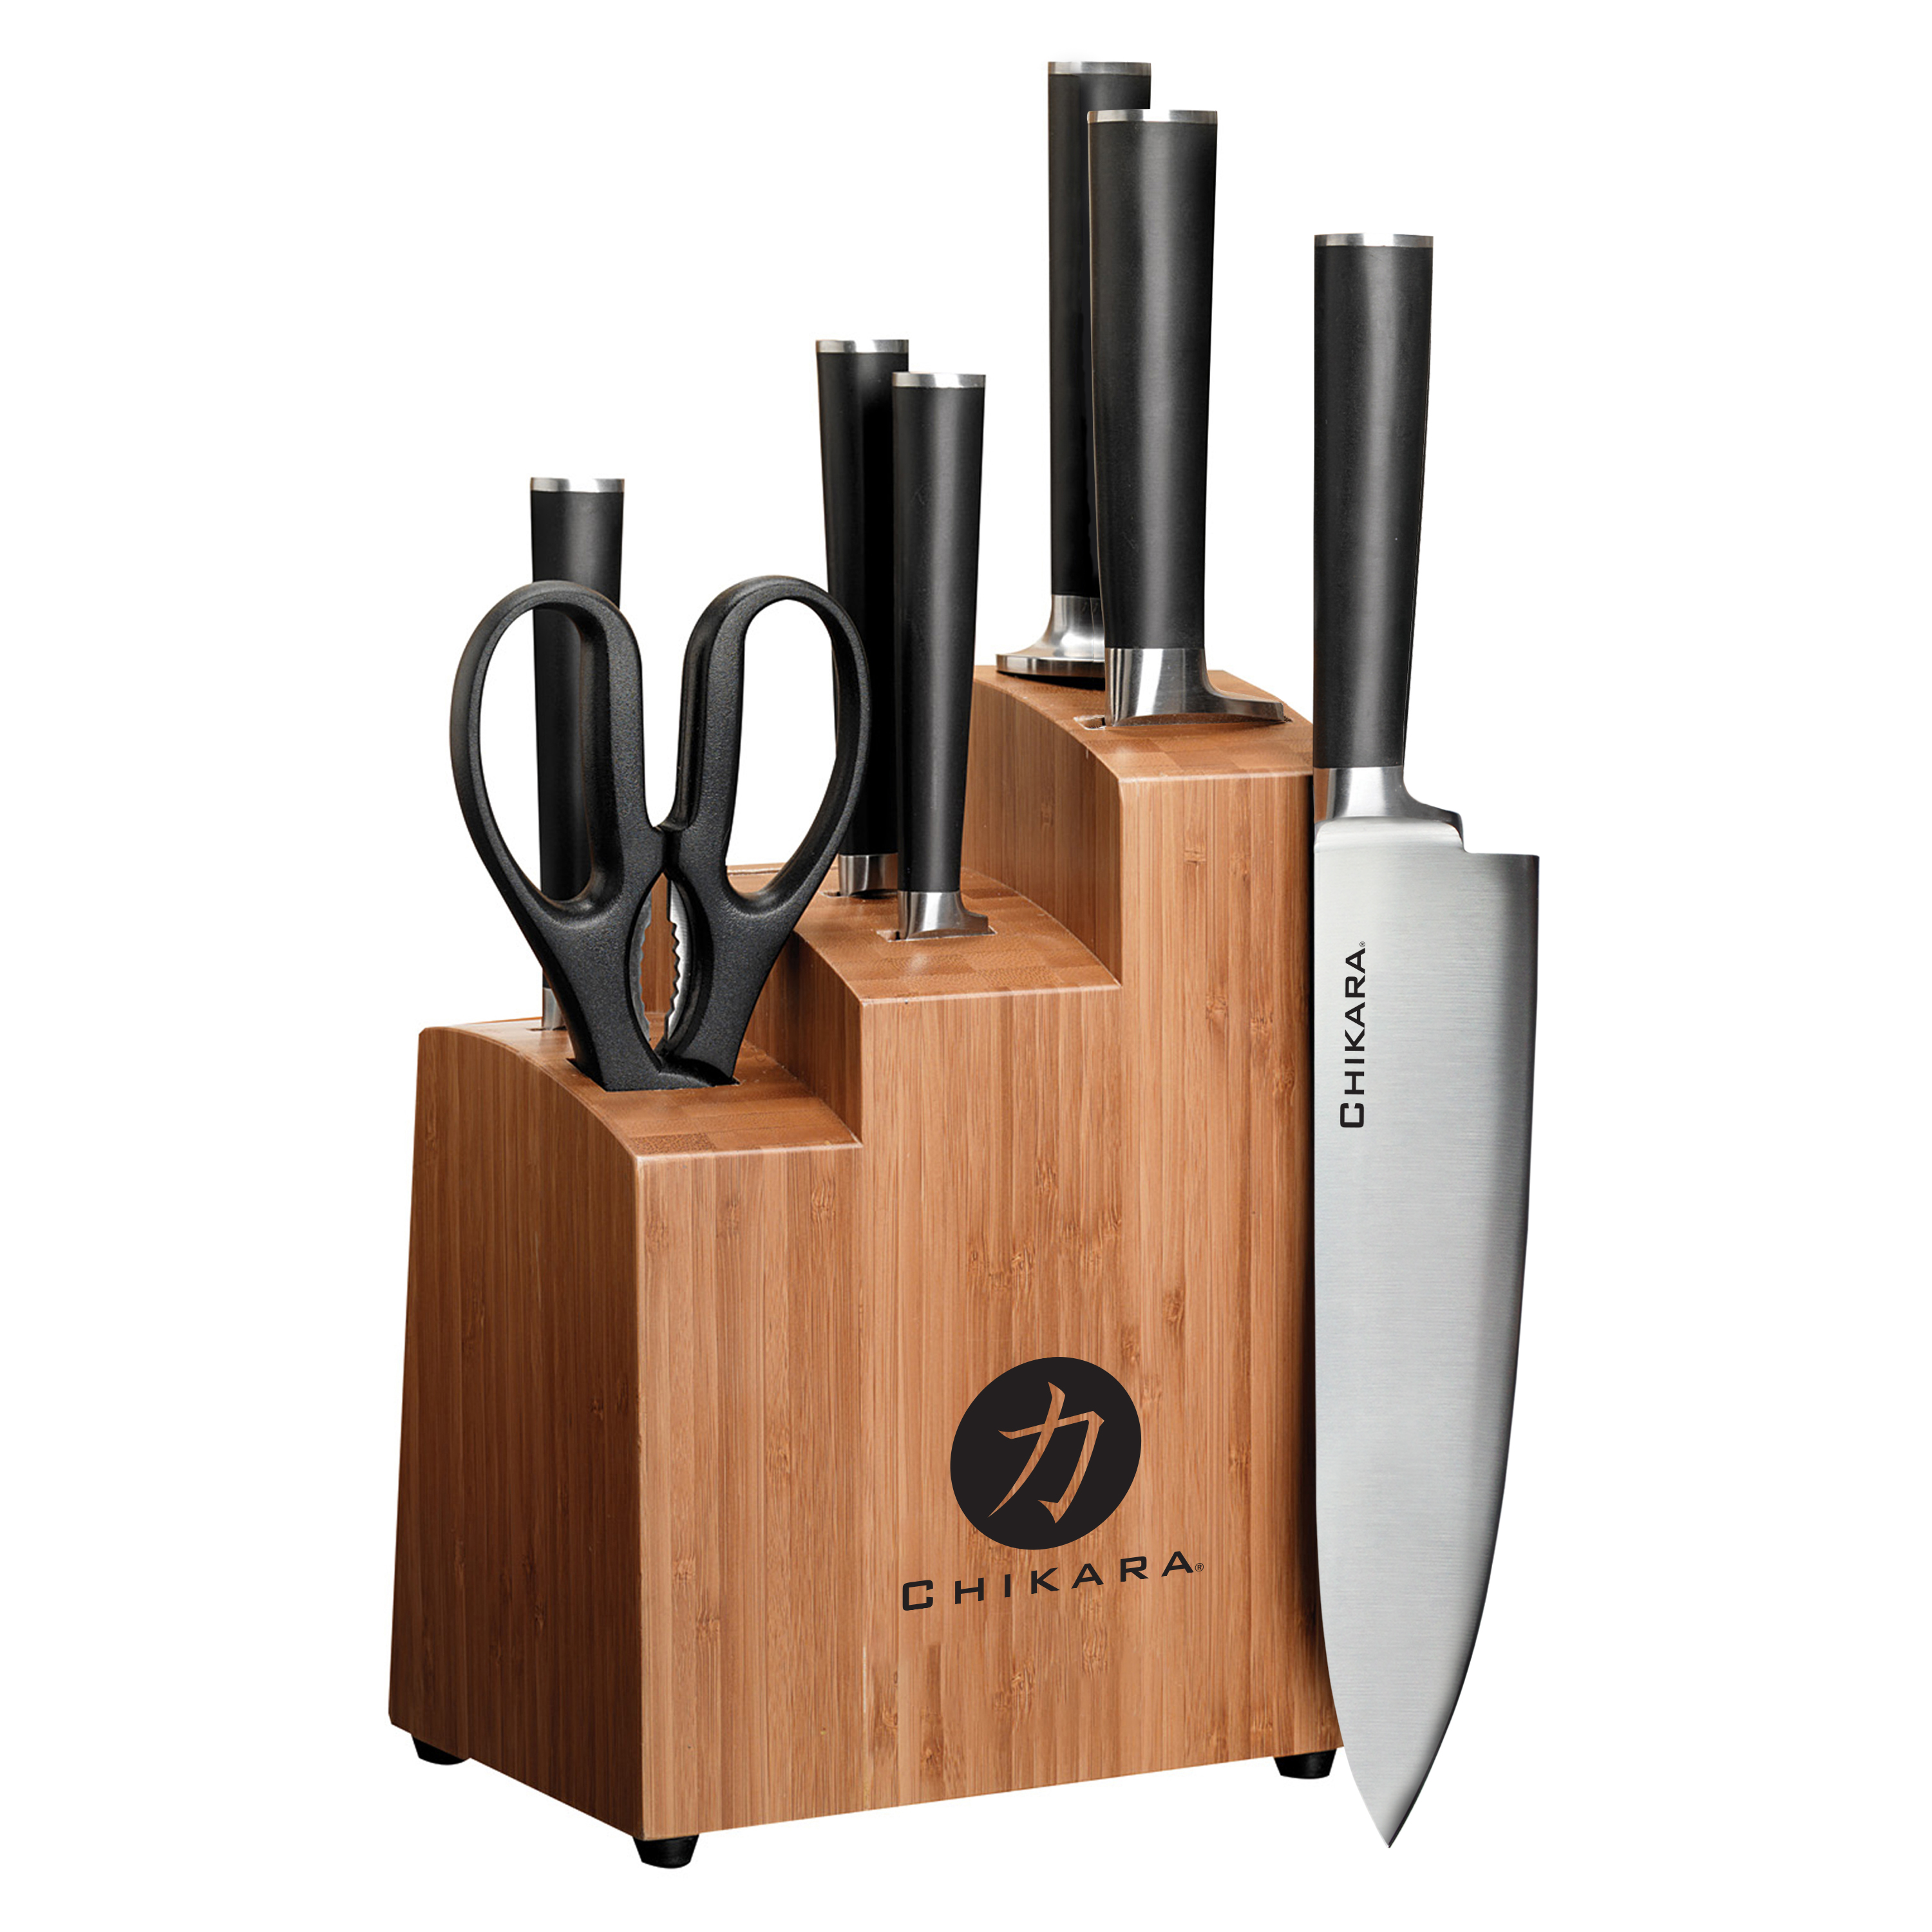 Ginsu Gourmet Chikara Series Forged 8-Piece Japanese Steel Knife Set � Cutlery Set with 420J Stainless Steel Kitchen Knives � Bamboo Finish... by Ginsu Brands a Scott Fetzer Company